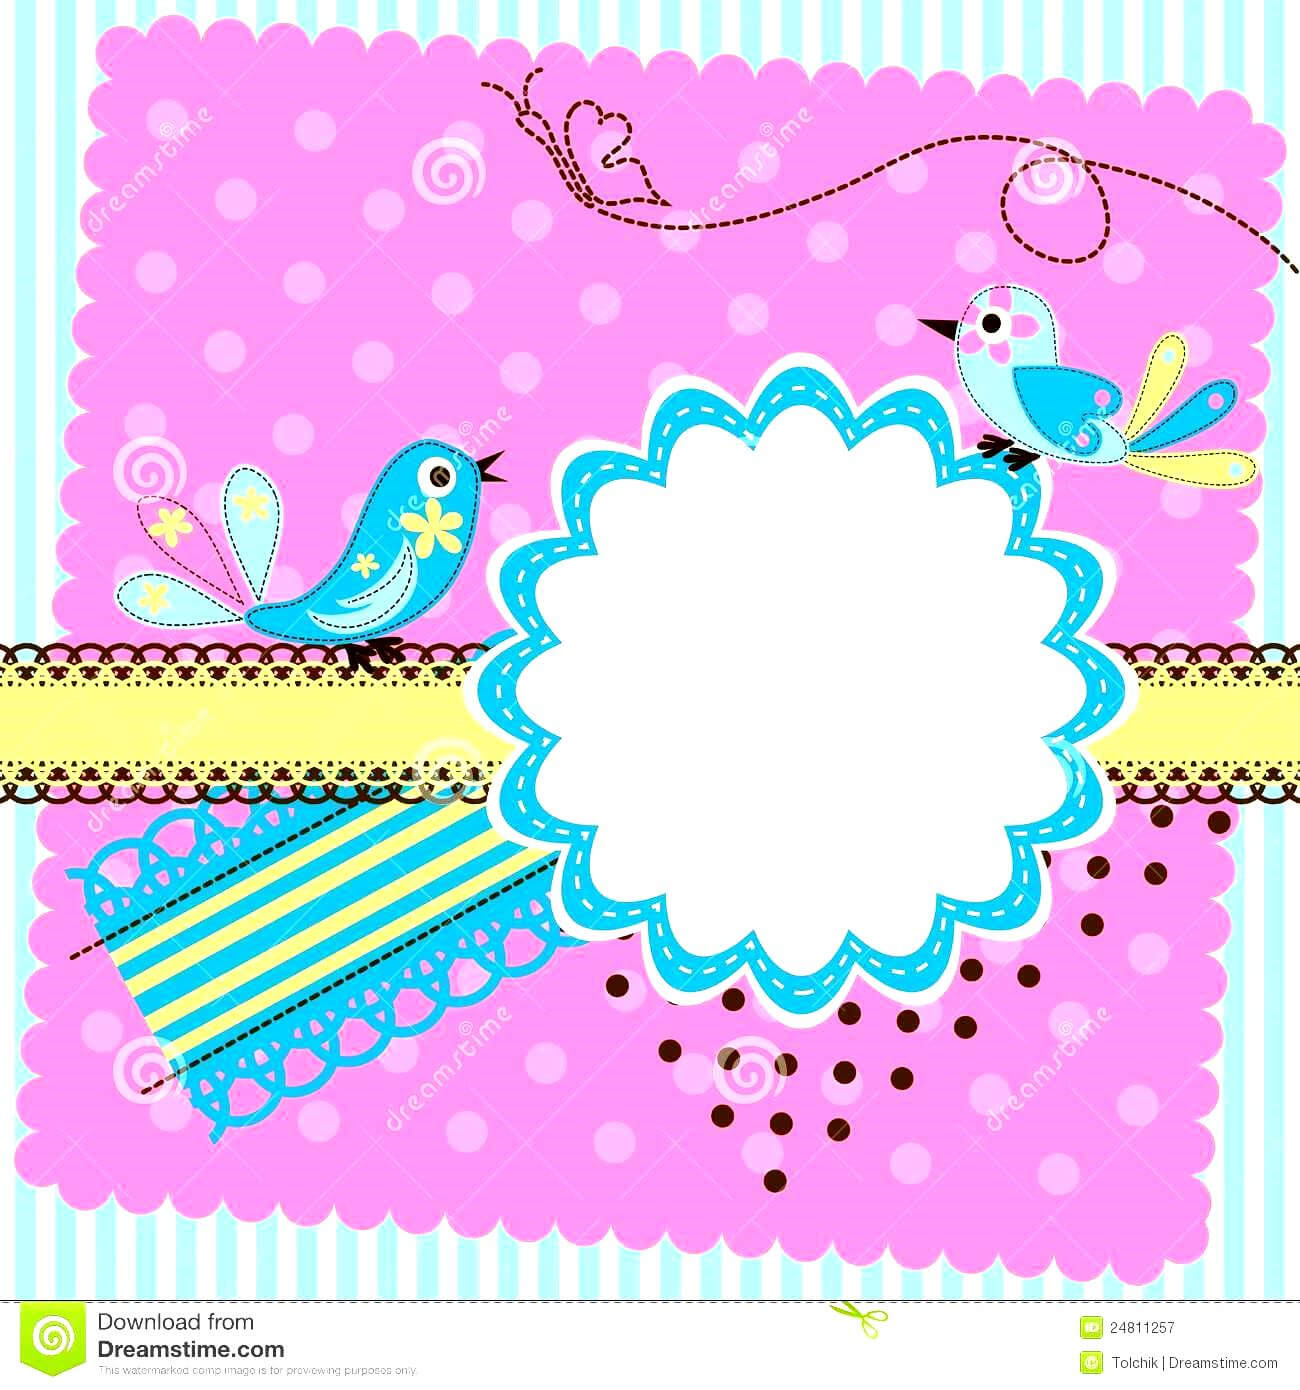 Free Blank Greeting Card Templates For Word] Free In Free Blank Greeting Card Templates For Word